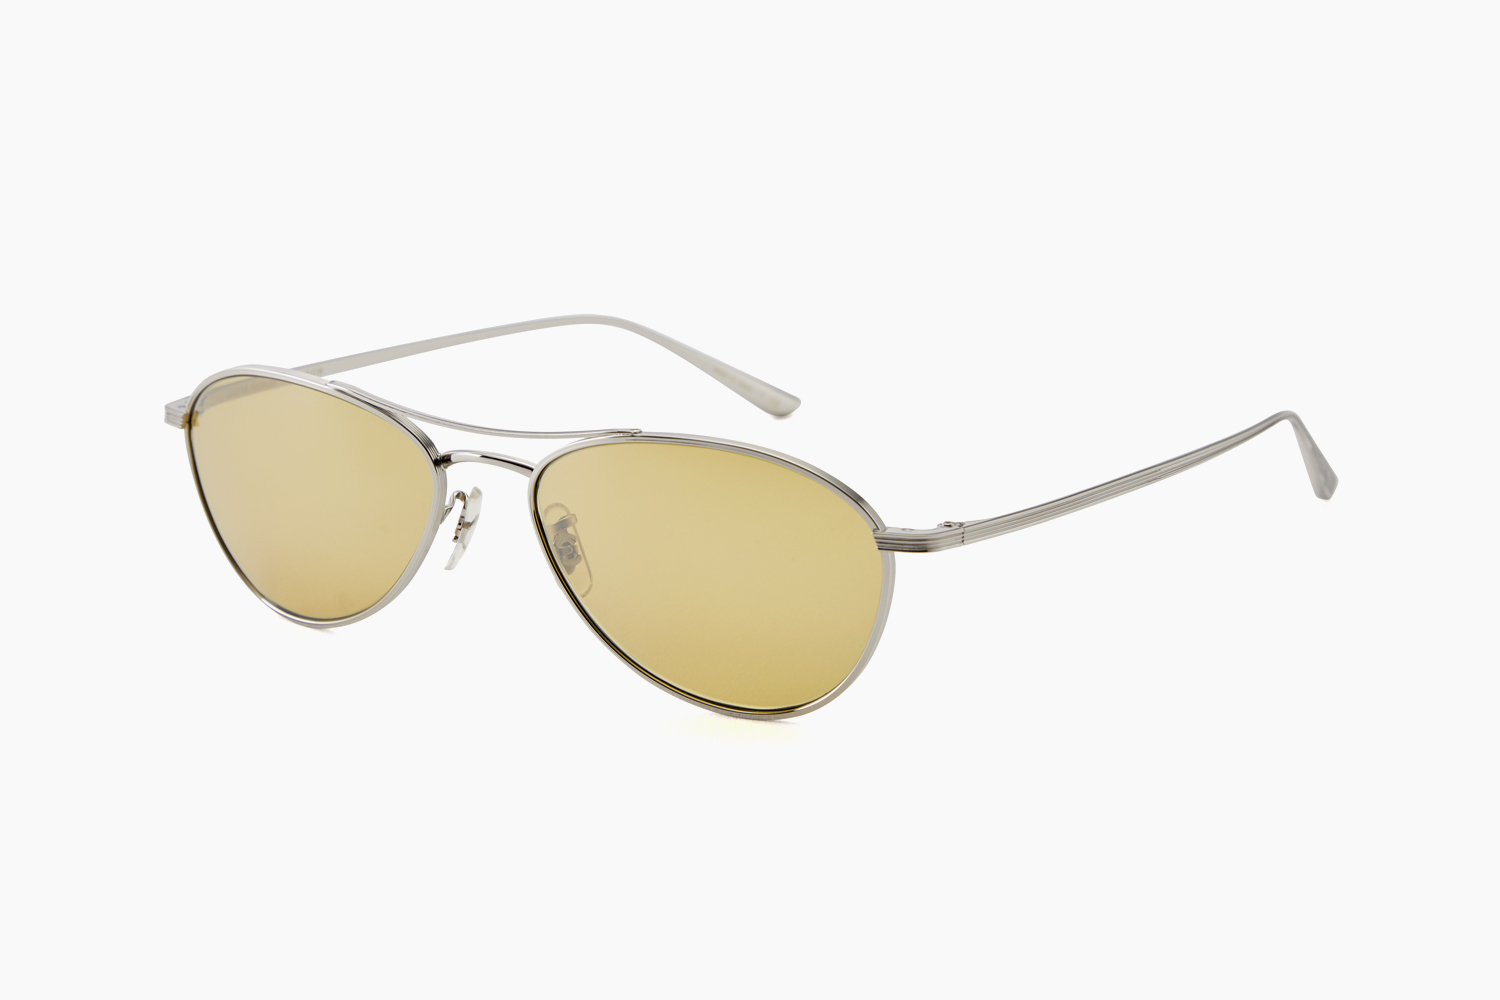 OLIVER PEOPLES THE ROW|AERO LA - 50360F|OLIVER PEOPLES